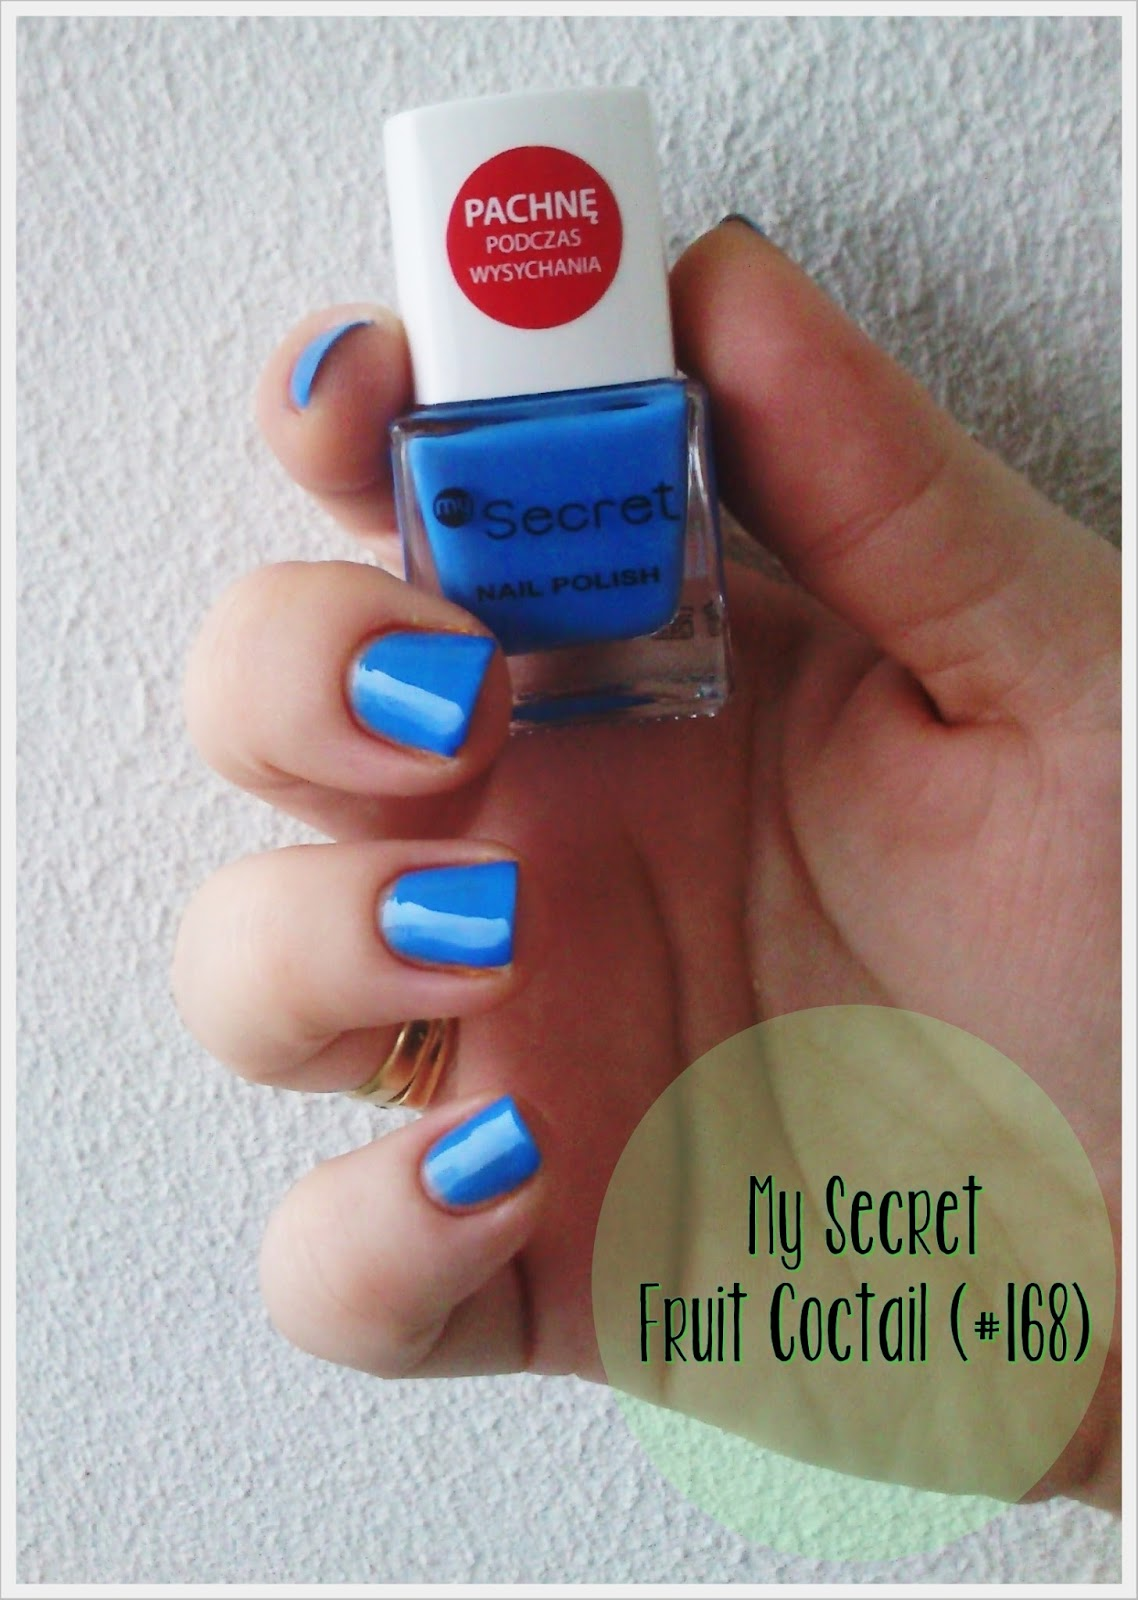 MY SECRET - FRUIT COCTAIL NT 168